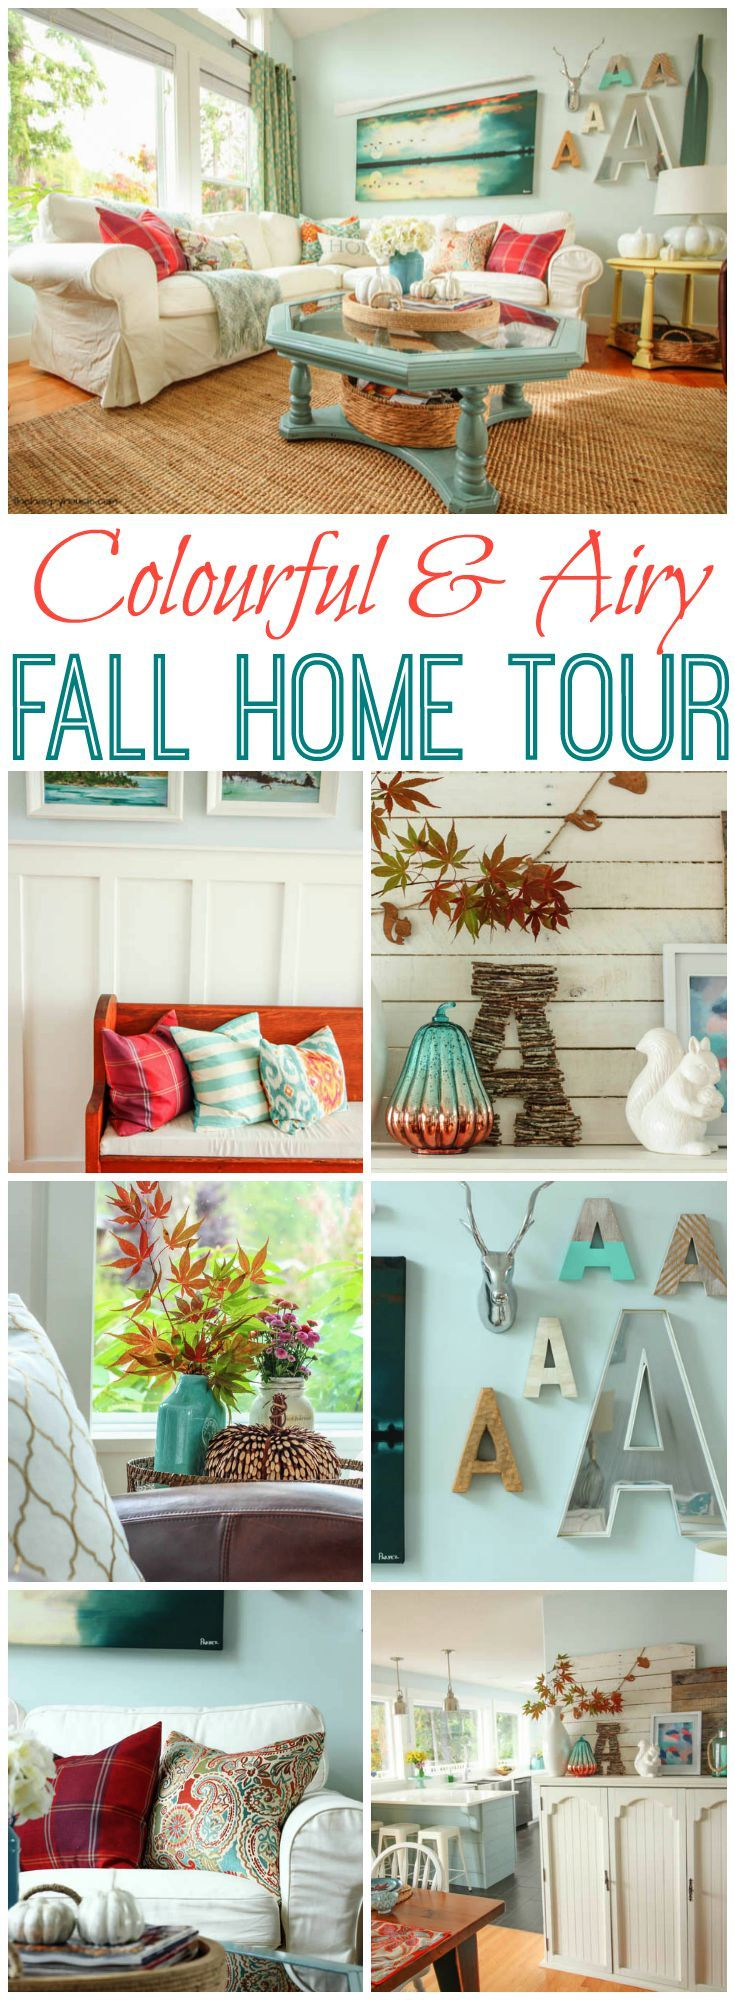 I love this fresh and colourful fall home tour at thehappyhousie.com